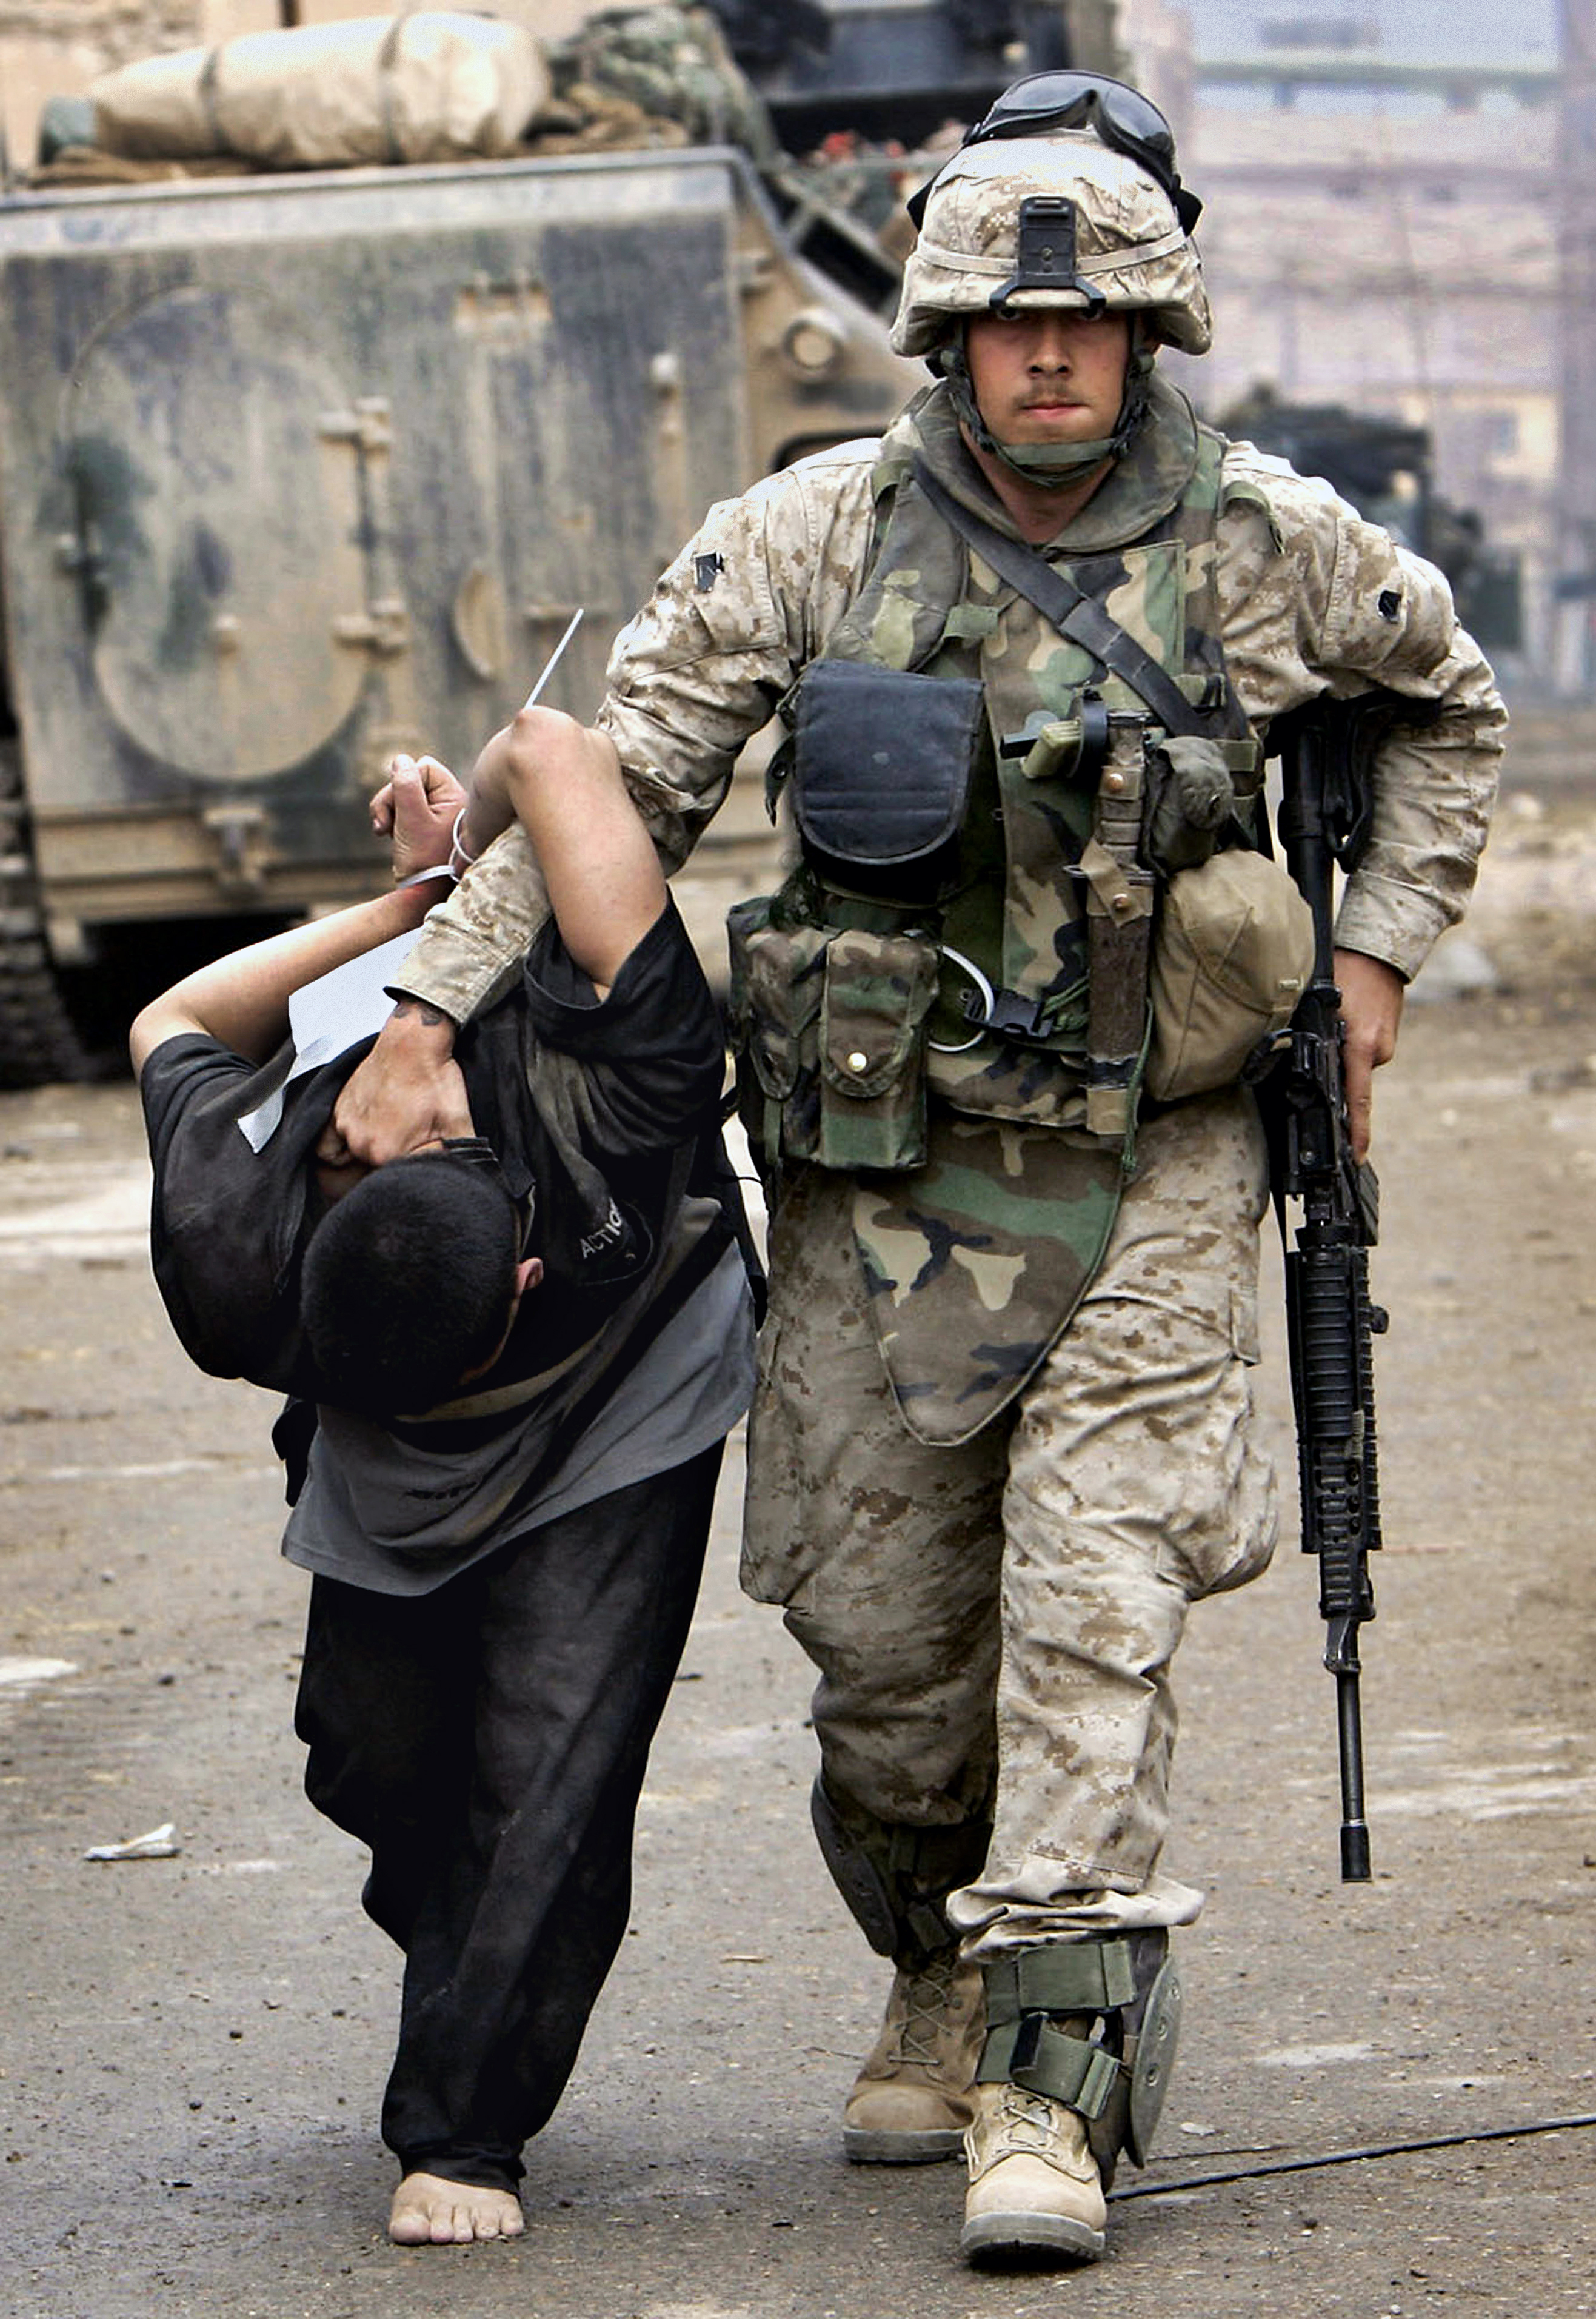 A U.S. Marine leads away a captured Iraqi man in the center of Fallujah, Iraq, Nov. 12, 2004. This photograph is one in a portfolio of twenty taken by eleven different Associated Press photographers throughout 2004 in Iraq. The Associated Press won a Pulitzer prize in breaking news photography, Monday April 4, 2005 for the series of pictures of bloody combat in Iraq. The award was the AP's 48th Pulitzer. (AP Photo/Anja Niedringhaus)